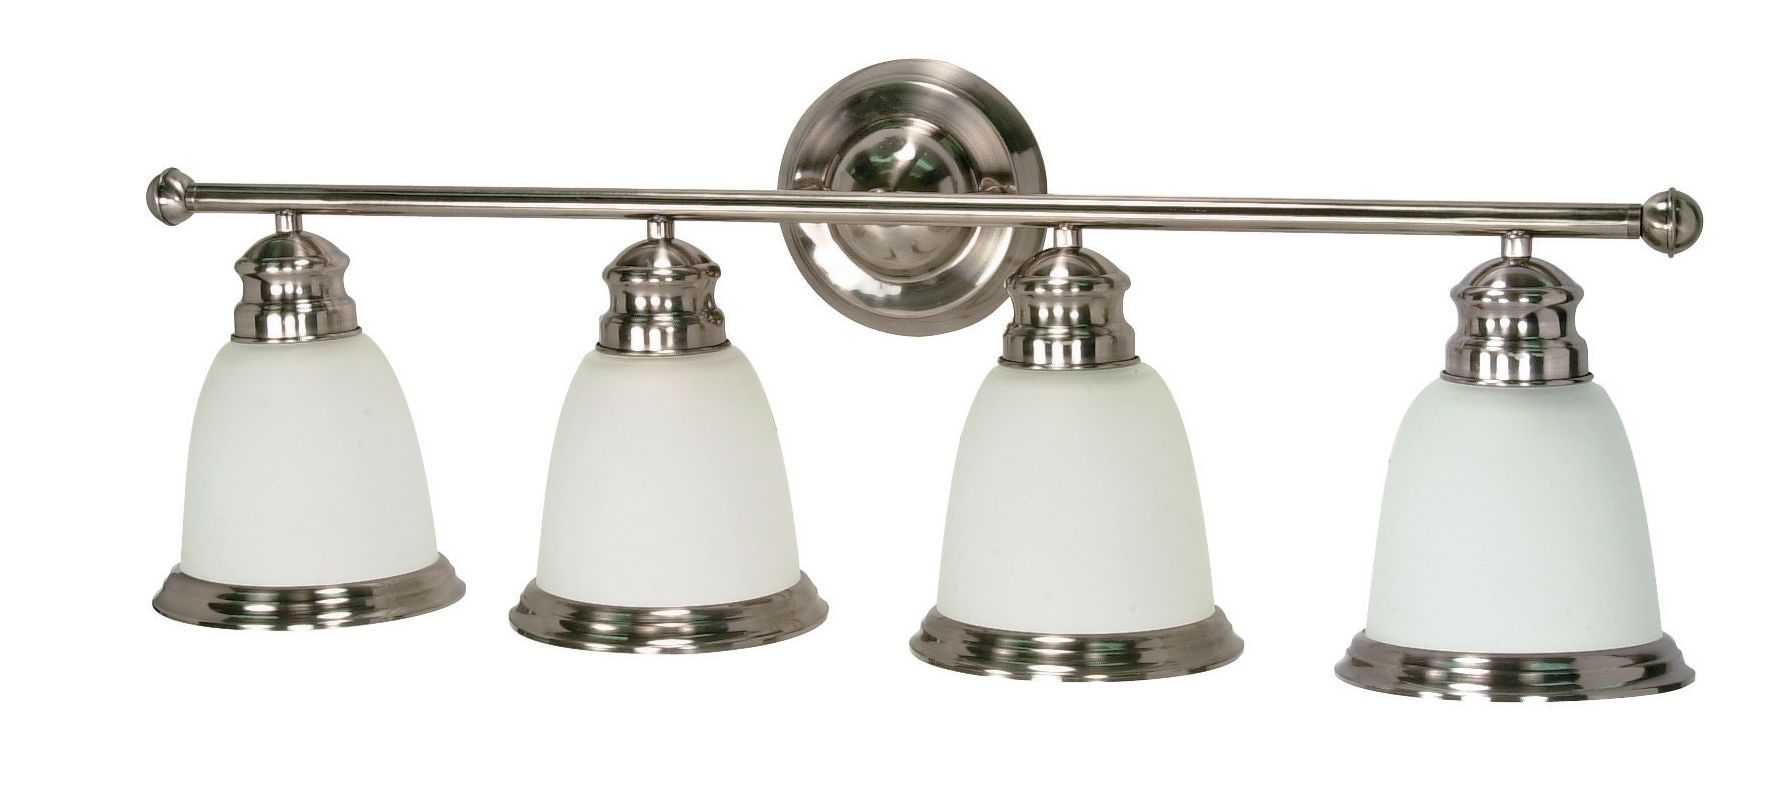 "Nuvo Lighting 60/625 Palladium 4 Light 30.5"" Wide Vanity Light with"